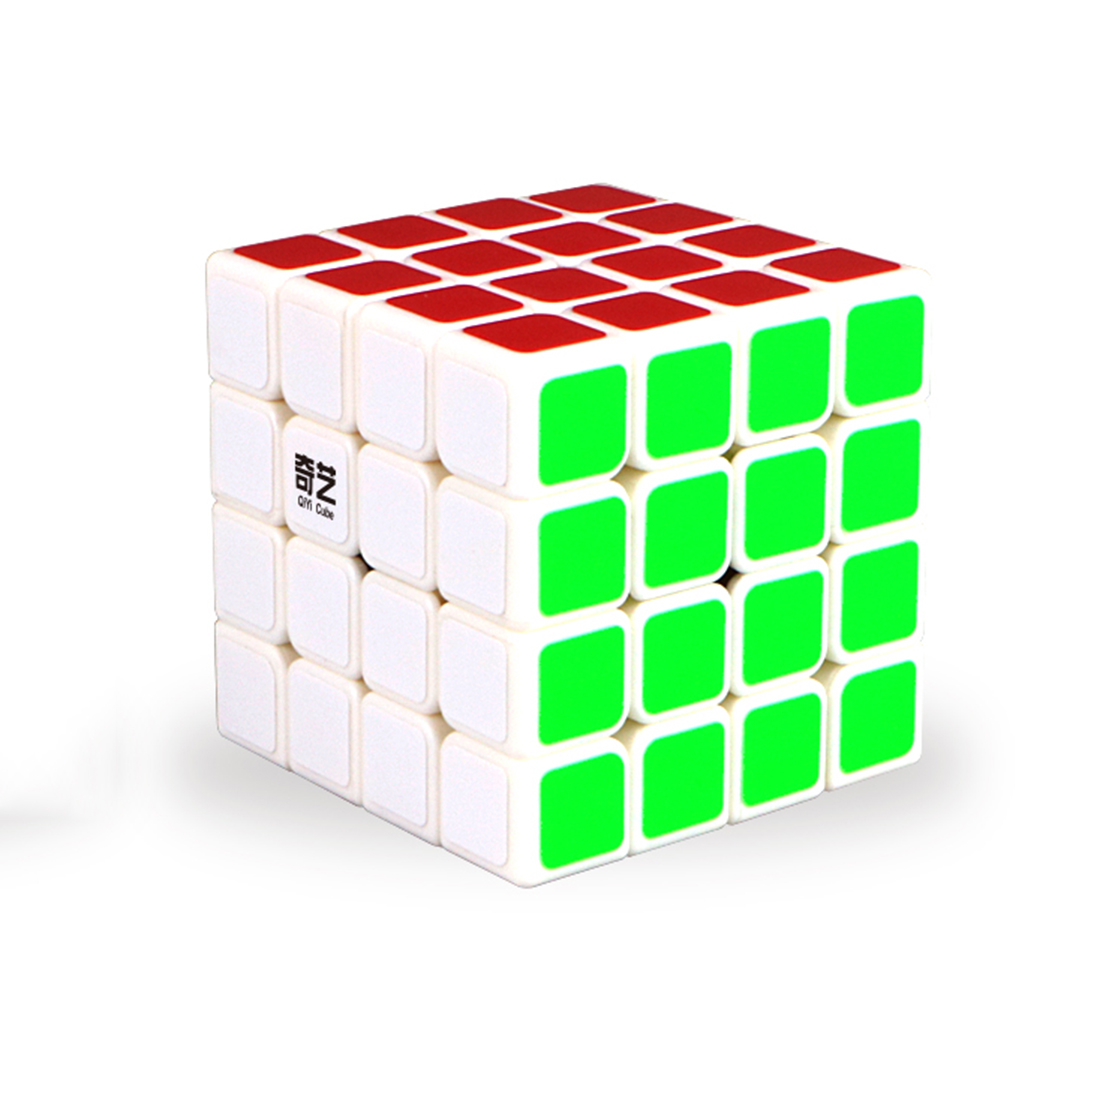 2017 Yeni QiYi Yuan S 4x4 Magic Cube Puzzle Speed - Bulmacalar - Fotoqrafiya 2